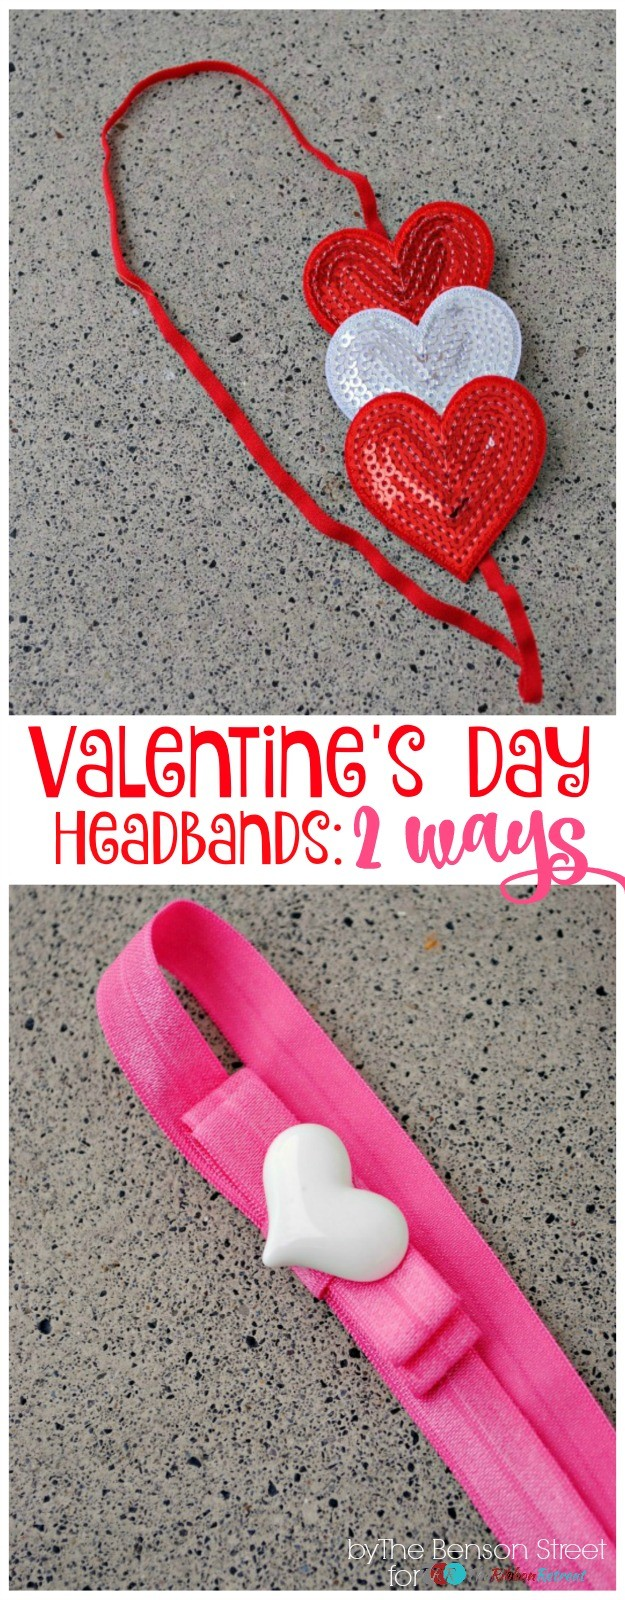 Valentine's Day Headbands, Two Ways - The Ribbon Retreat Blog